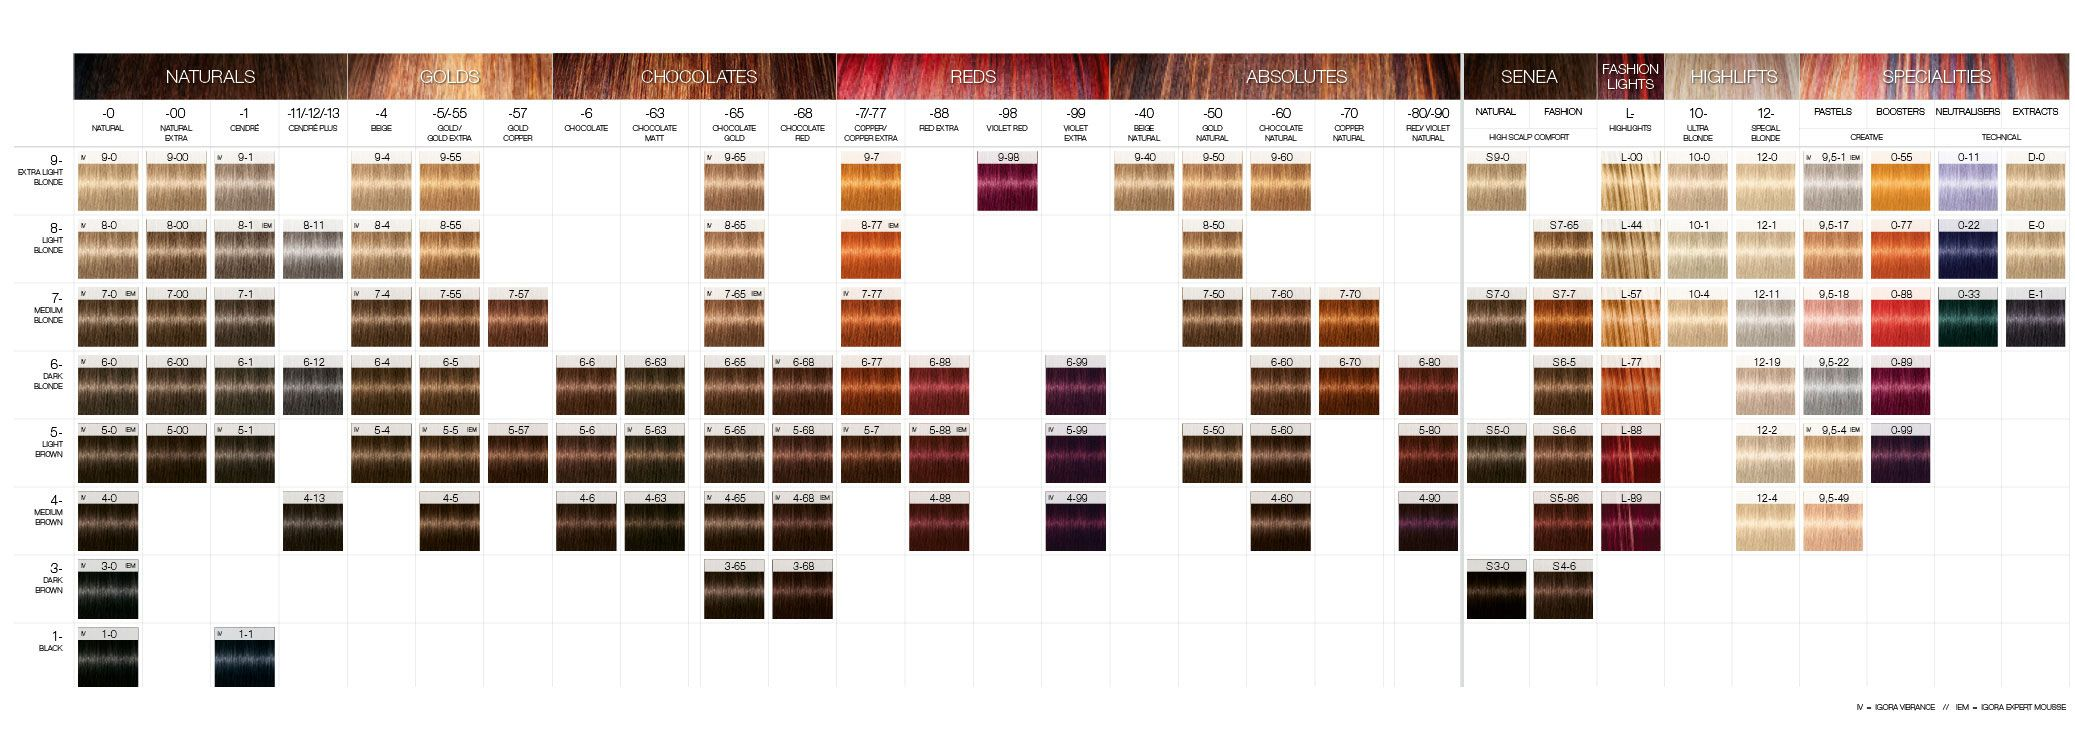 Igora schwarzkopf hair color chart also related image pinterest and rh